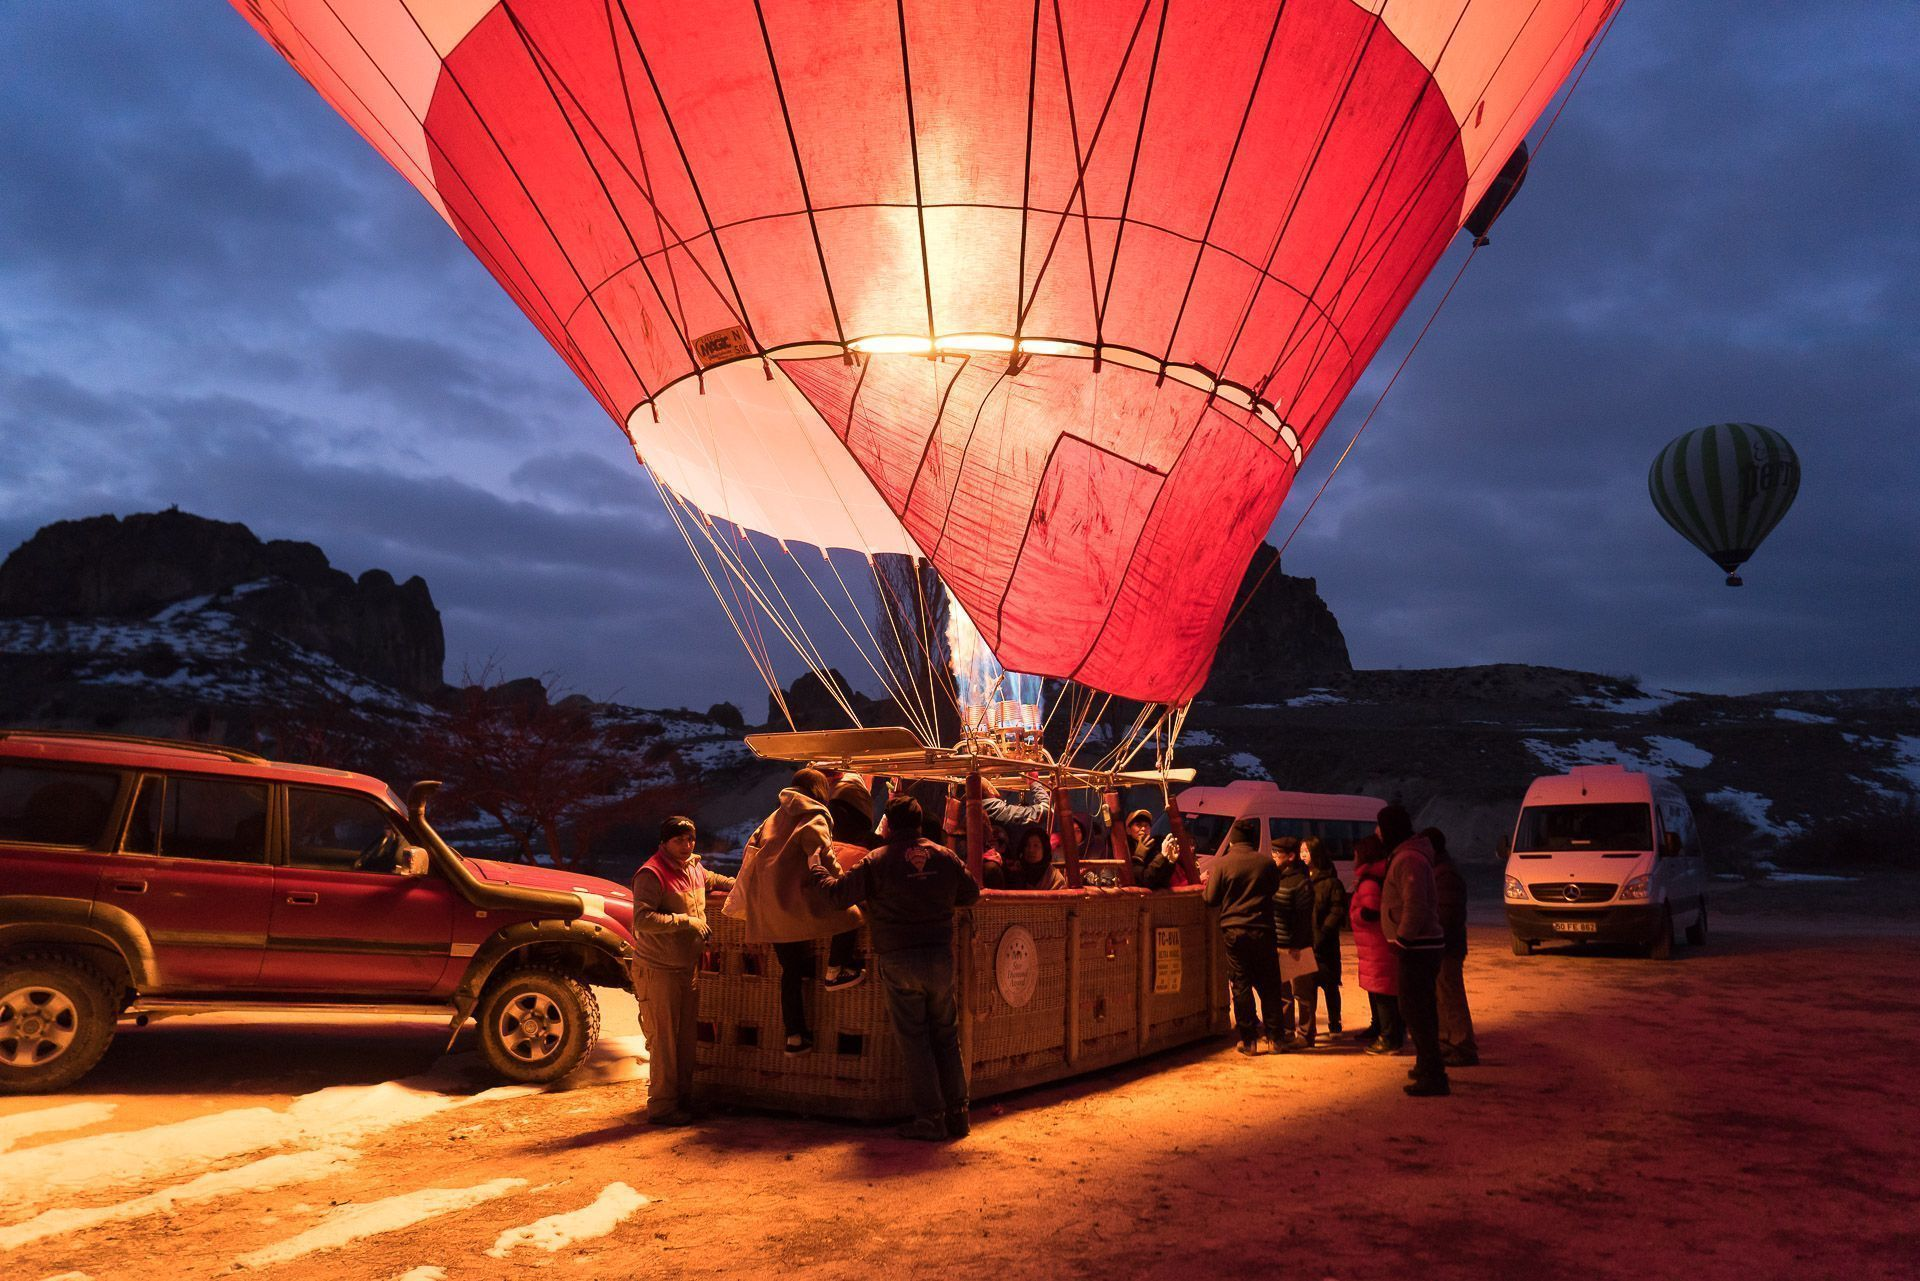 Lesvoyageuses-Turquie-Cappadoce-Montgolfiere-Nature-Aventure-1